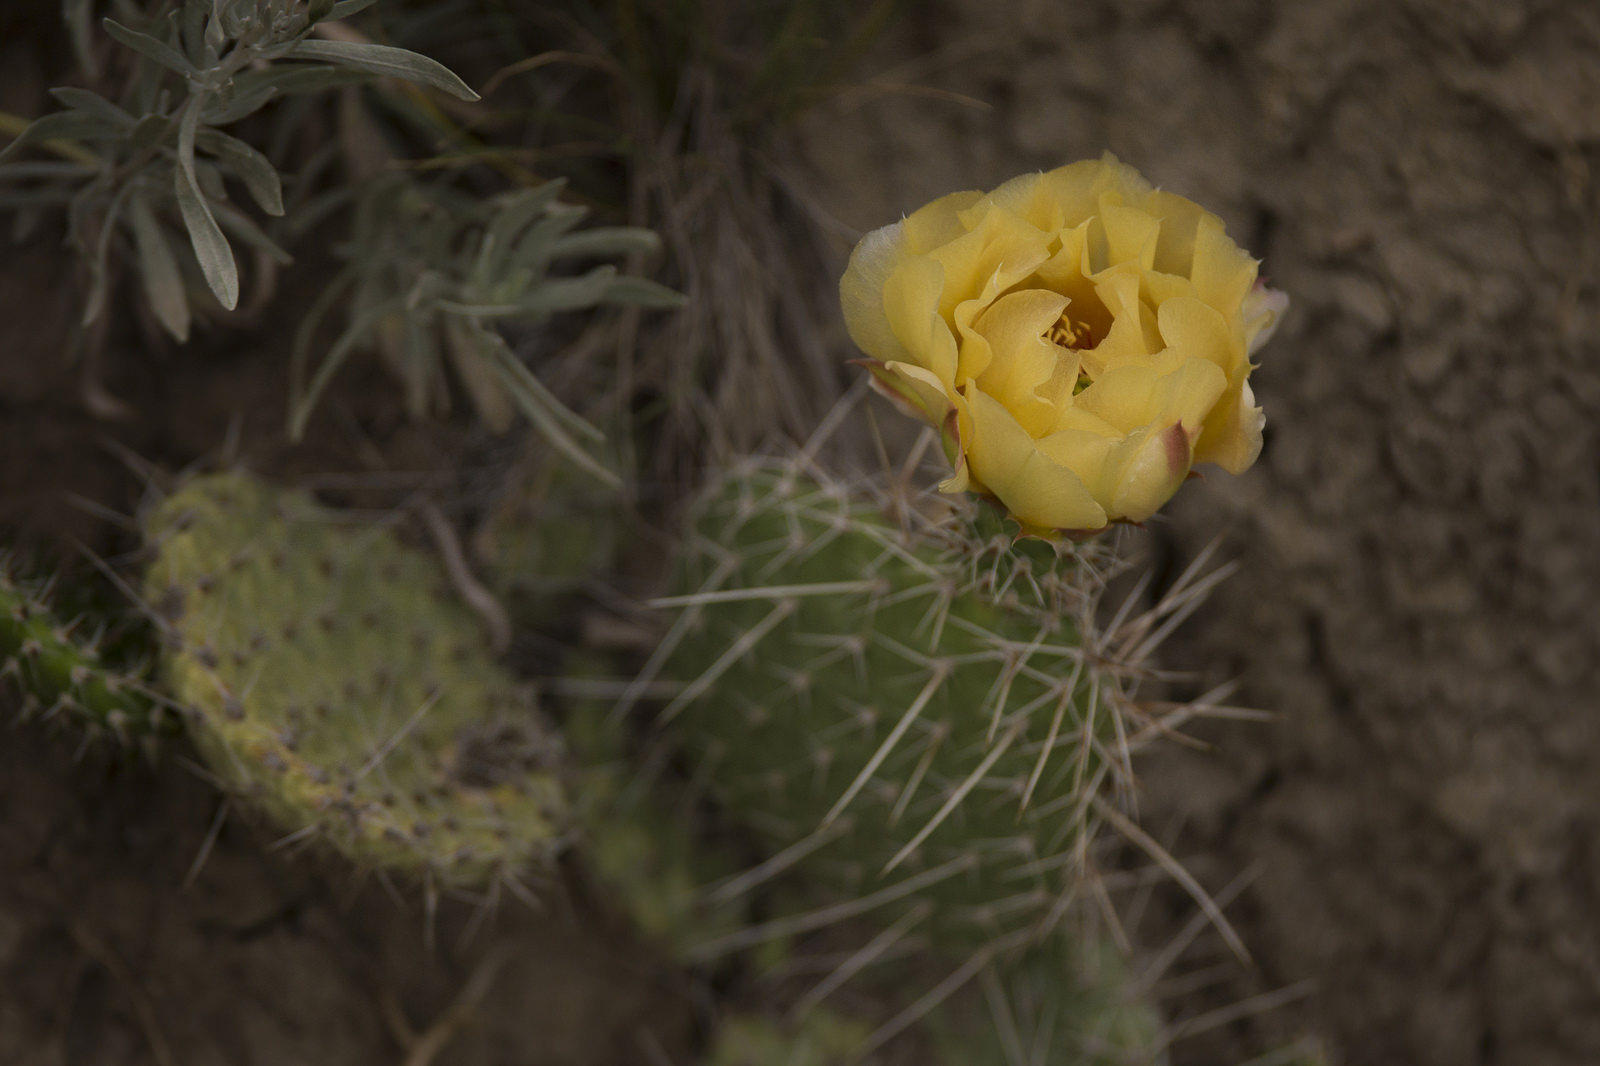 Prickly pear cactus in bloom.